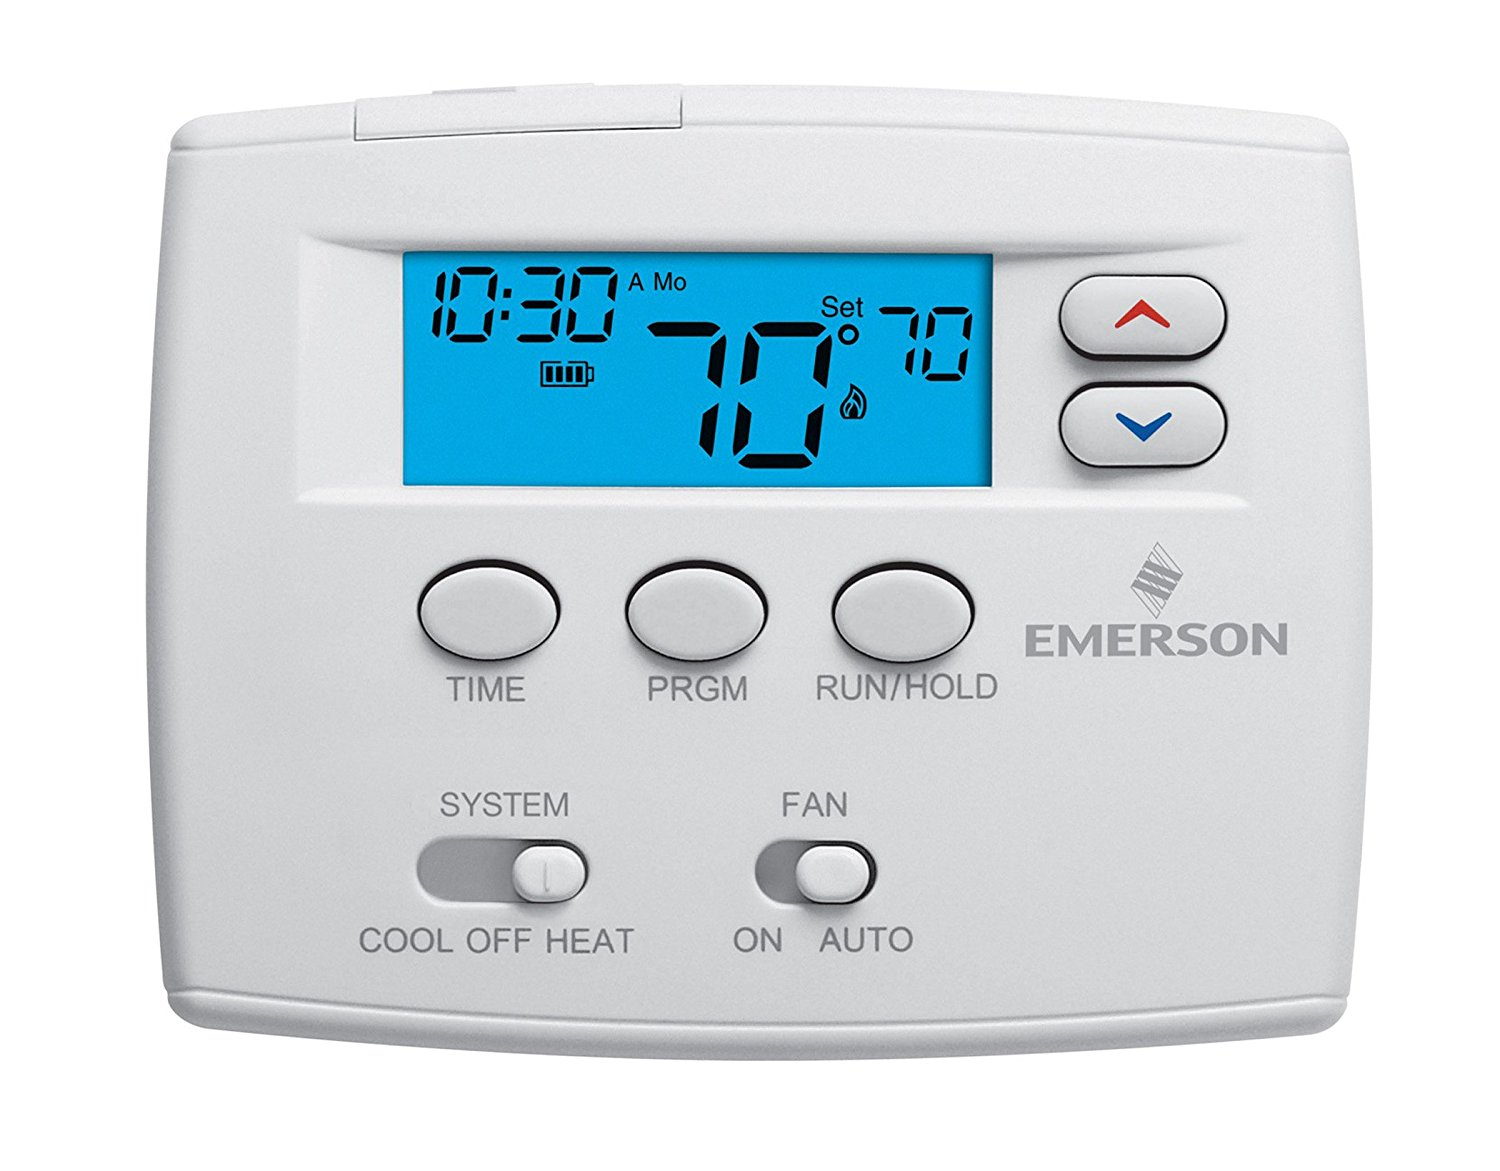 Emerson 1F80 0224 Single Stage 24 Hour Programmable Thermostat